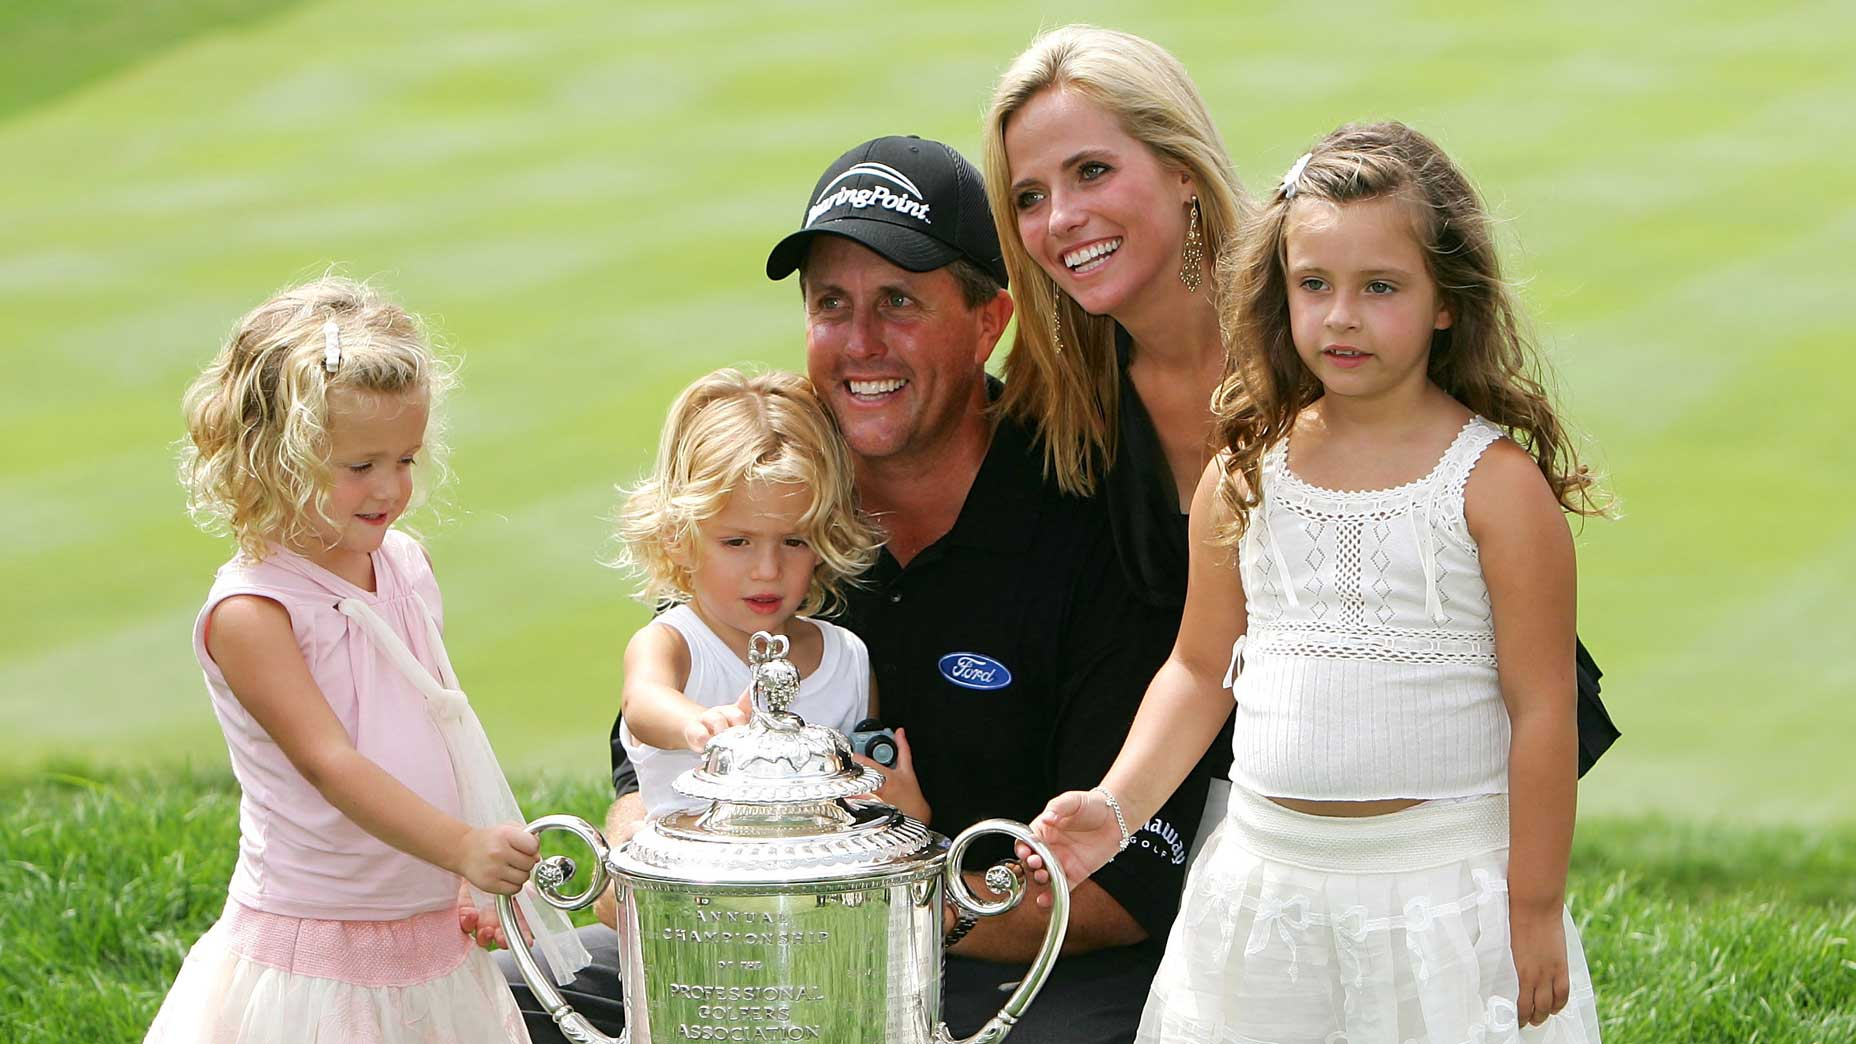 Amy and Phil Mickelson and their children, from left to right, Sophia, Evan and Amanda, after Phil's victory at the 2005 PGA Championship.